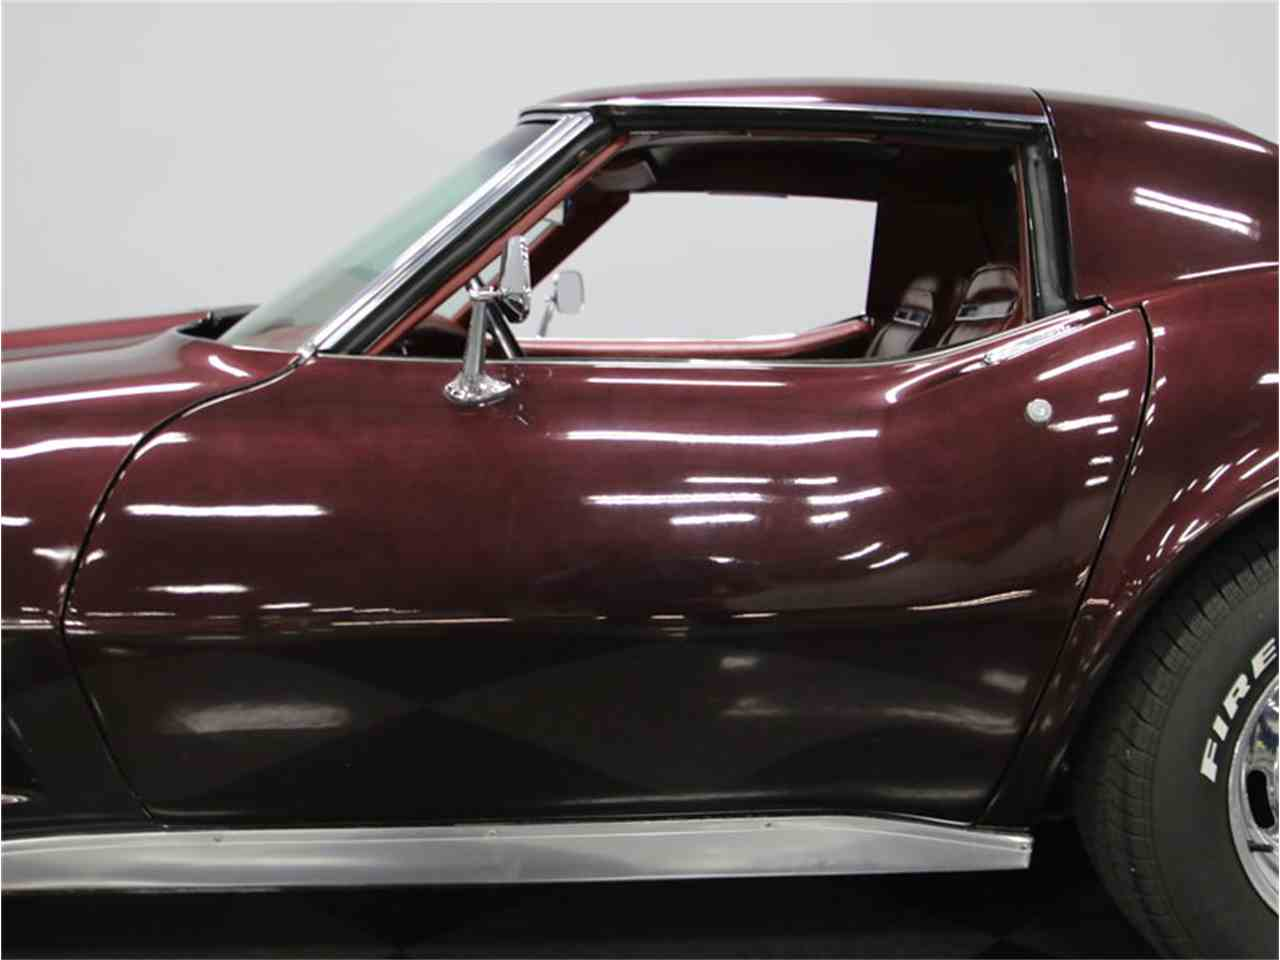 Large Picture of Classic '73 Chevrolet Corvette located in Tennessee - $18,995.00 - JLH6